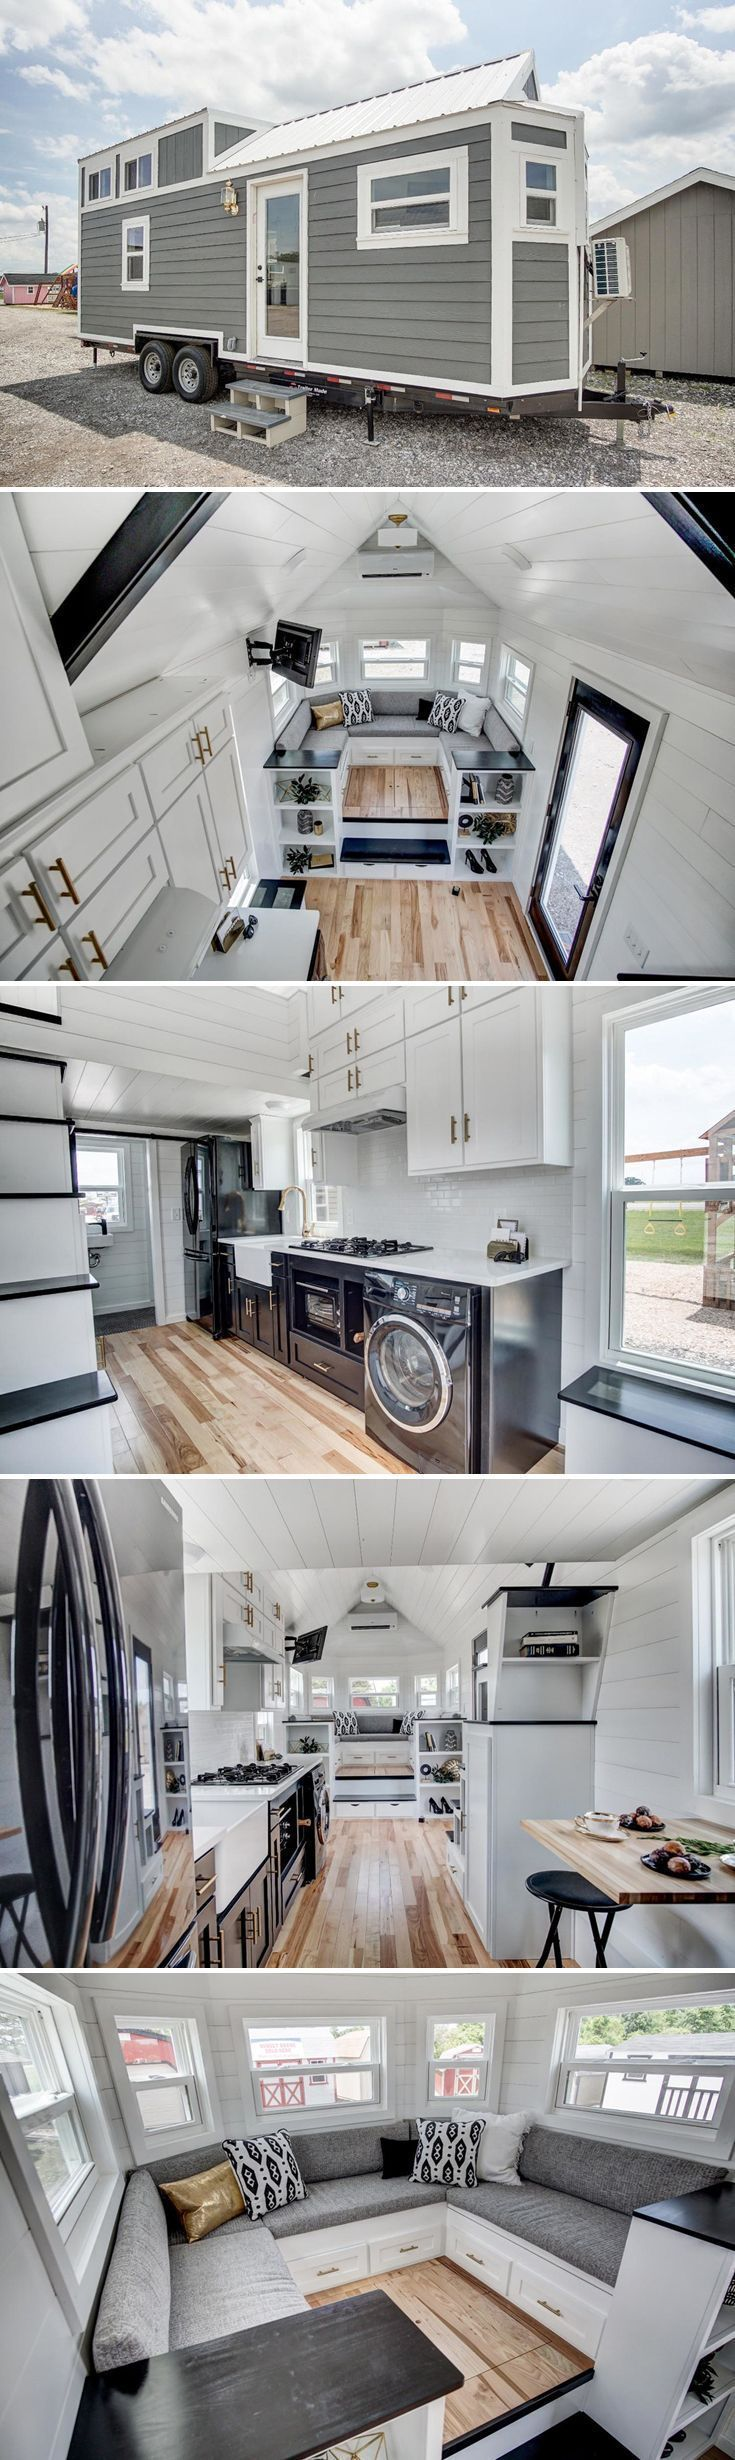 Tiny House Ideas 23 – ideacoration.co